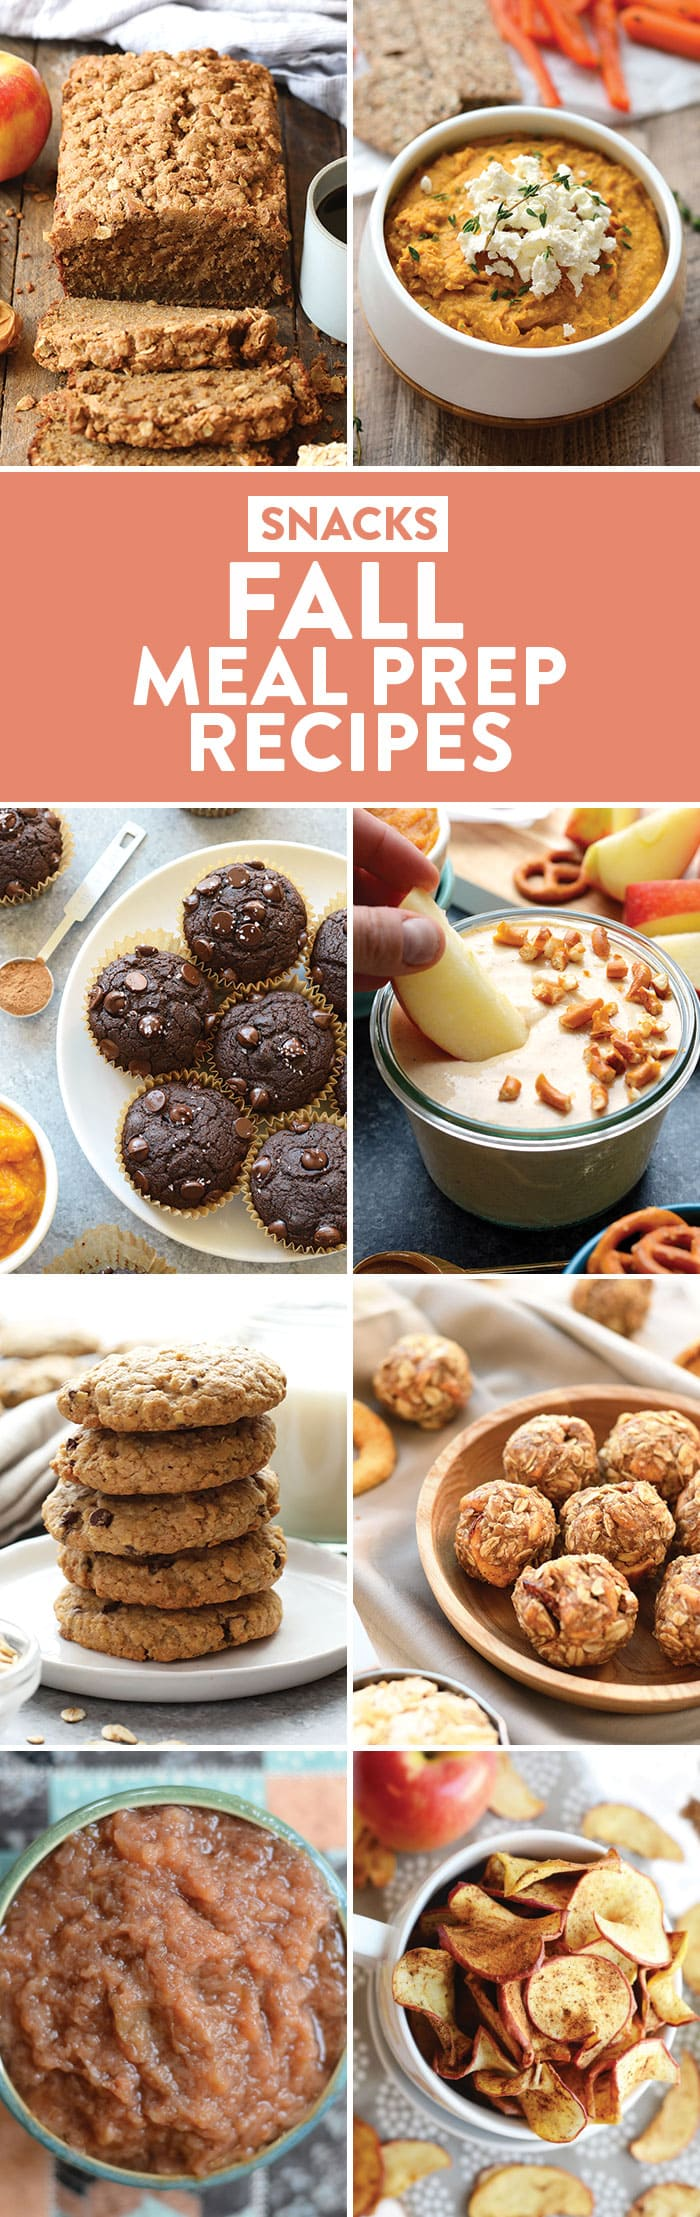 a photo collage of snack recipes